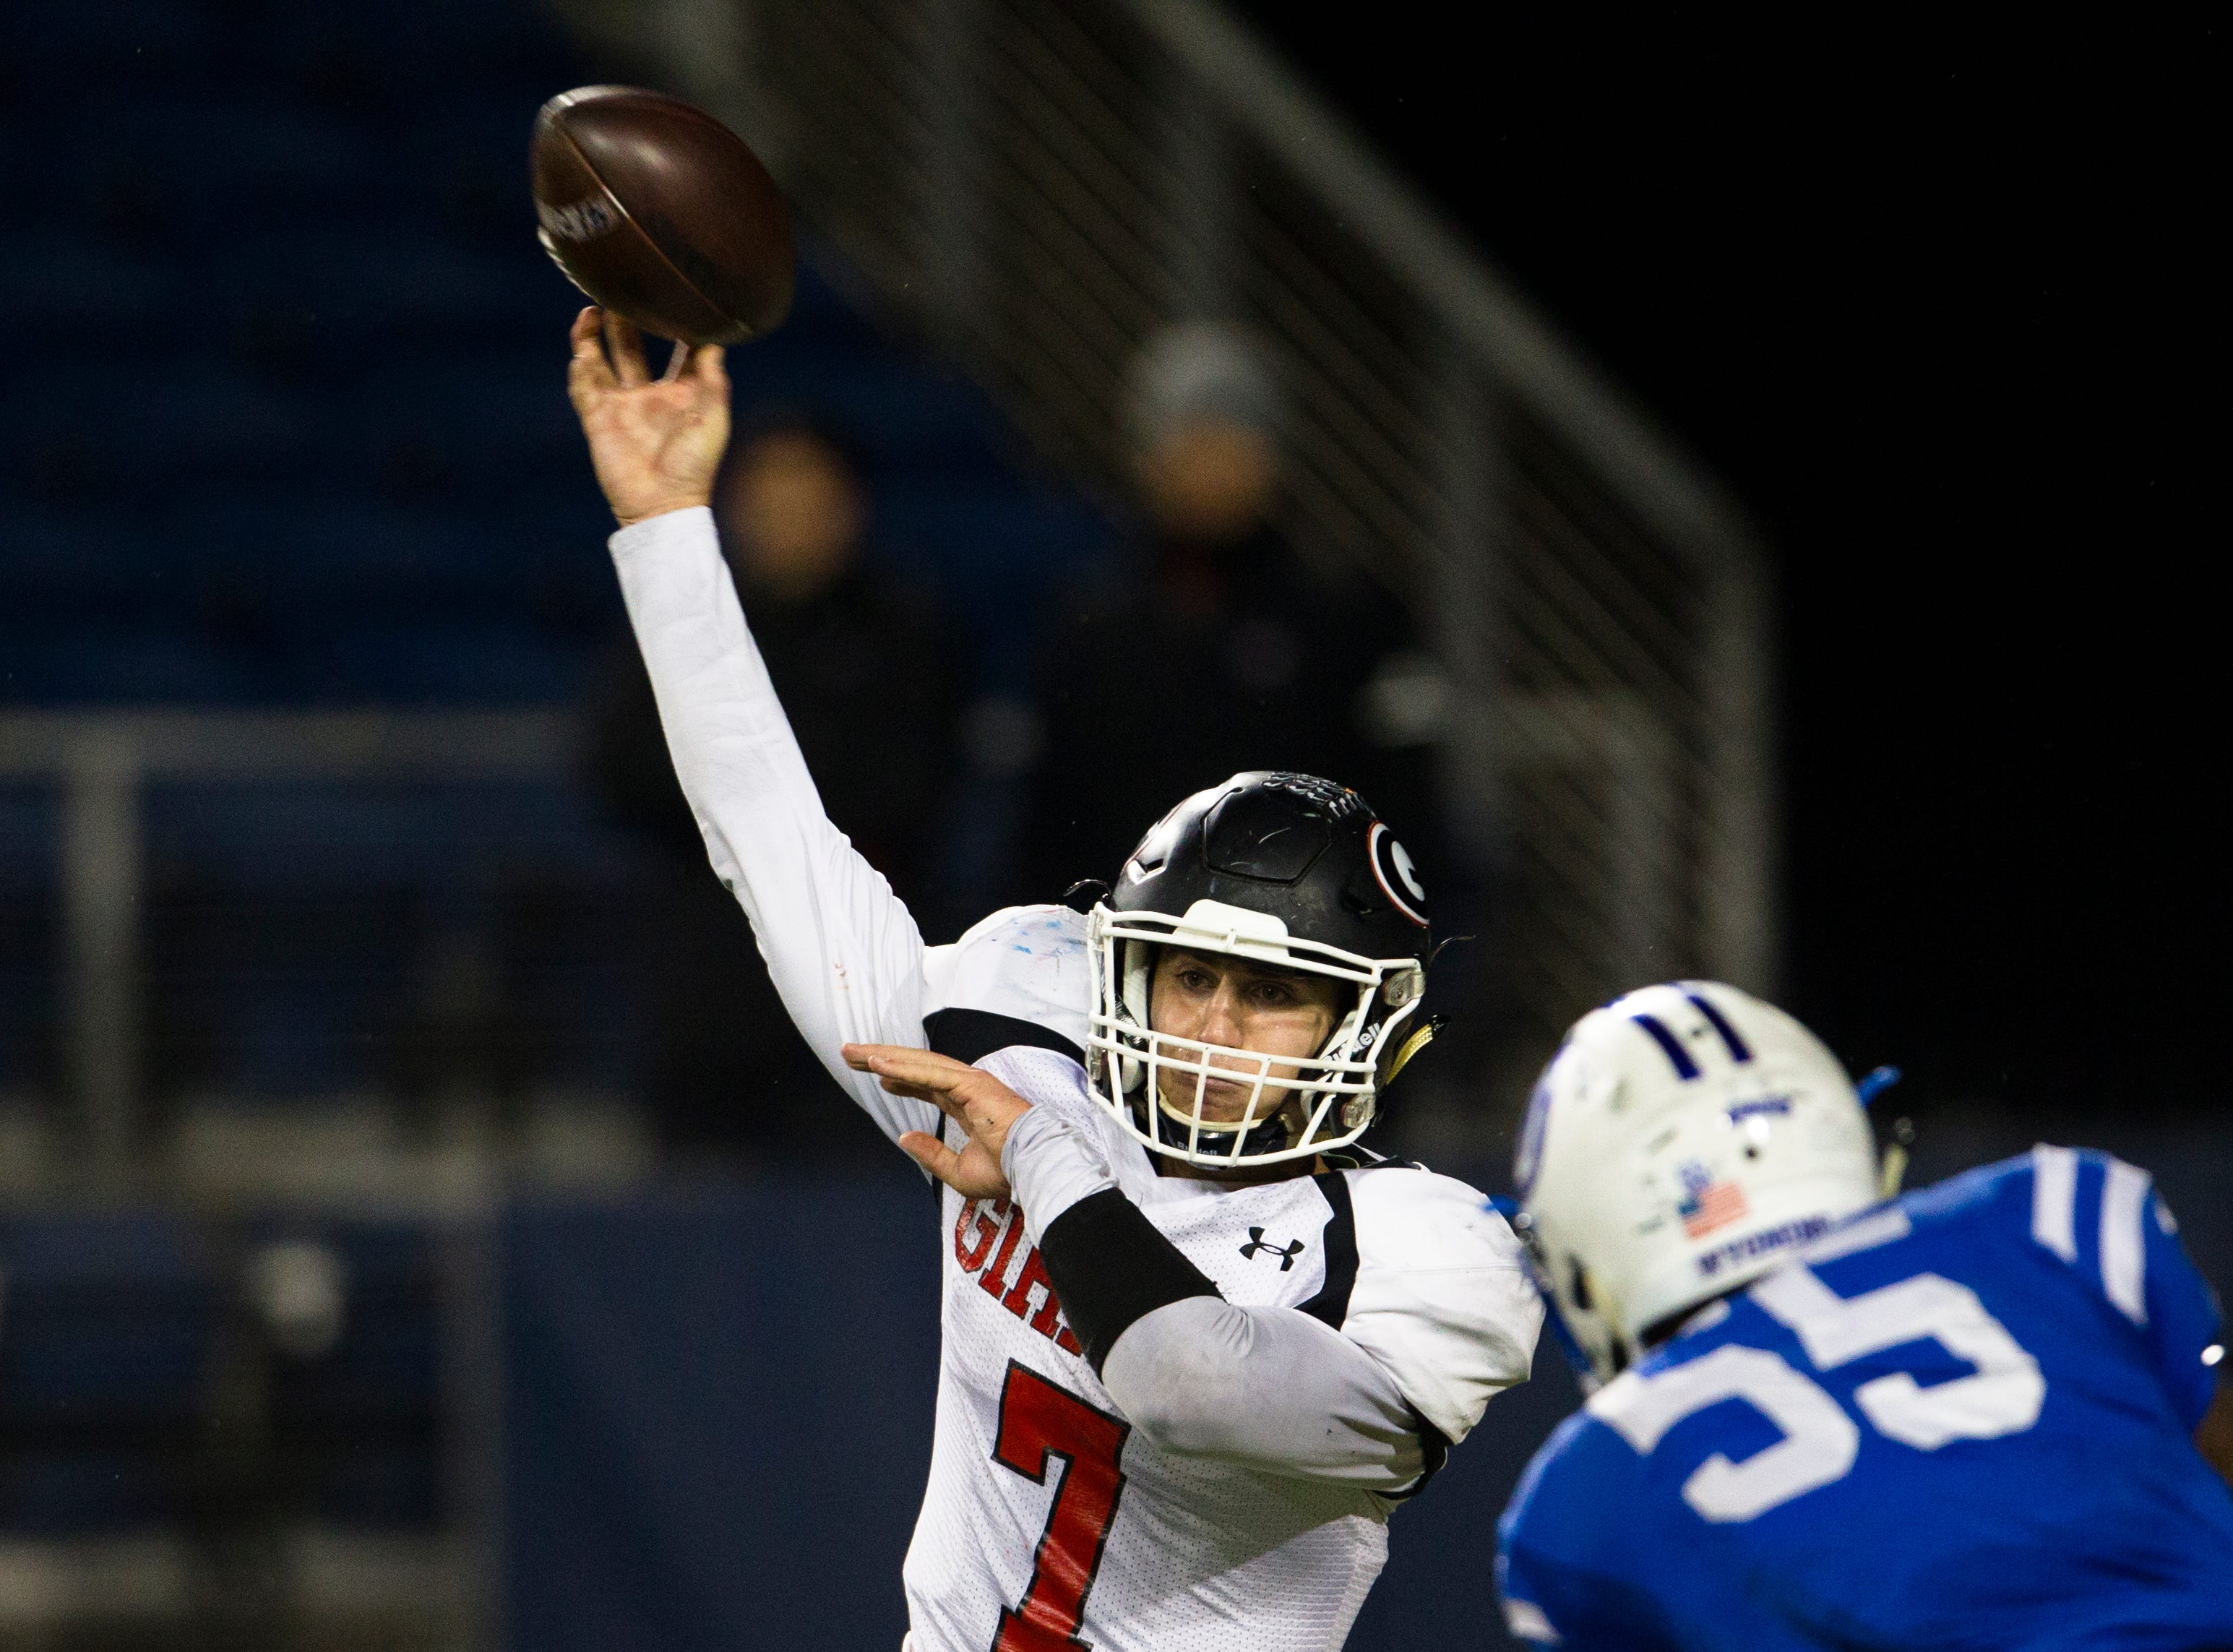 Girard's Mark Waid (7) throws a pass during the first half of the OHSAA Division IV State Championship football game between Wyoming and Girard on Saturday, Dec. 1, 2018, at Tom Benson Stadium in Canton.